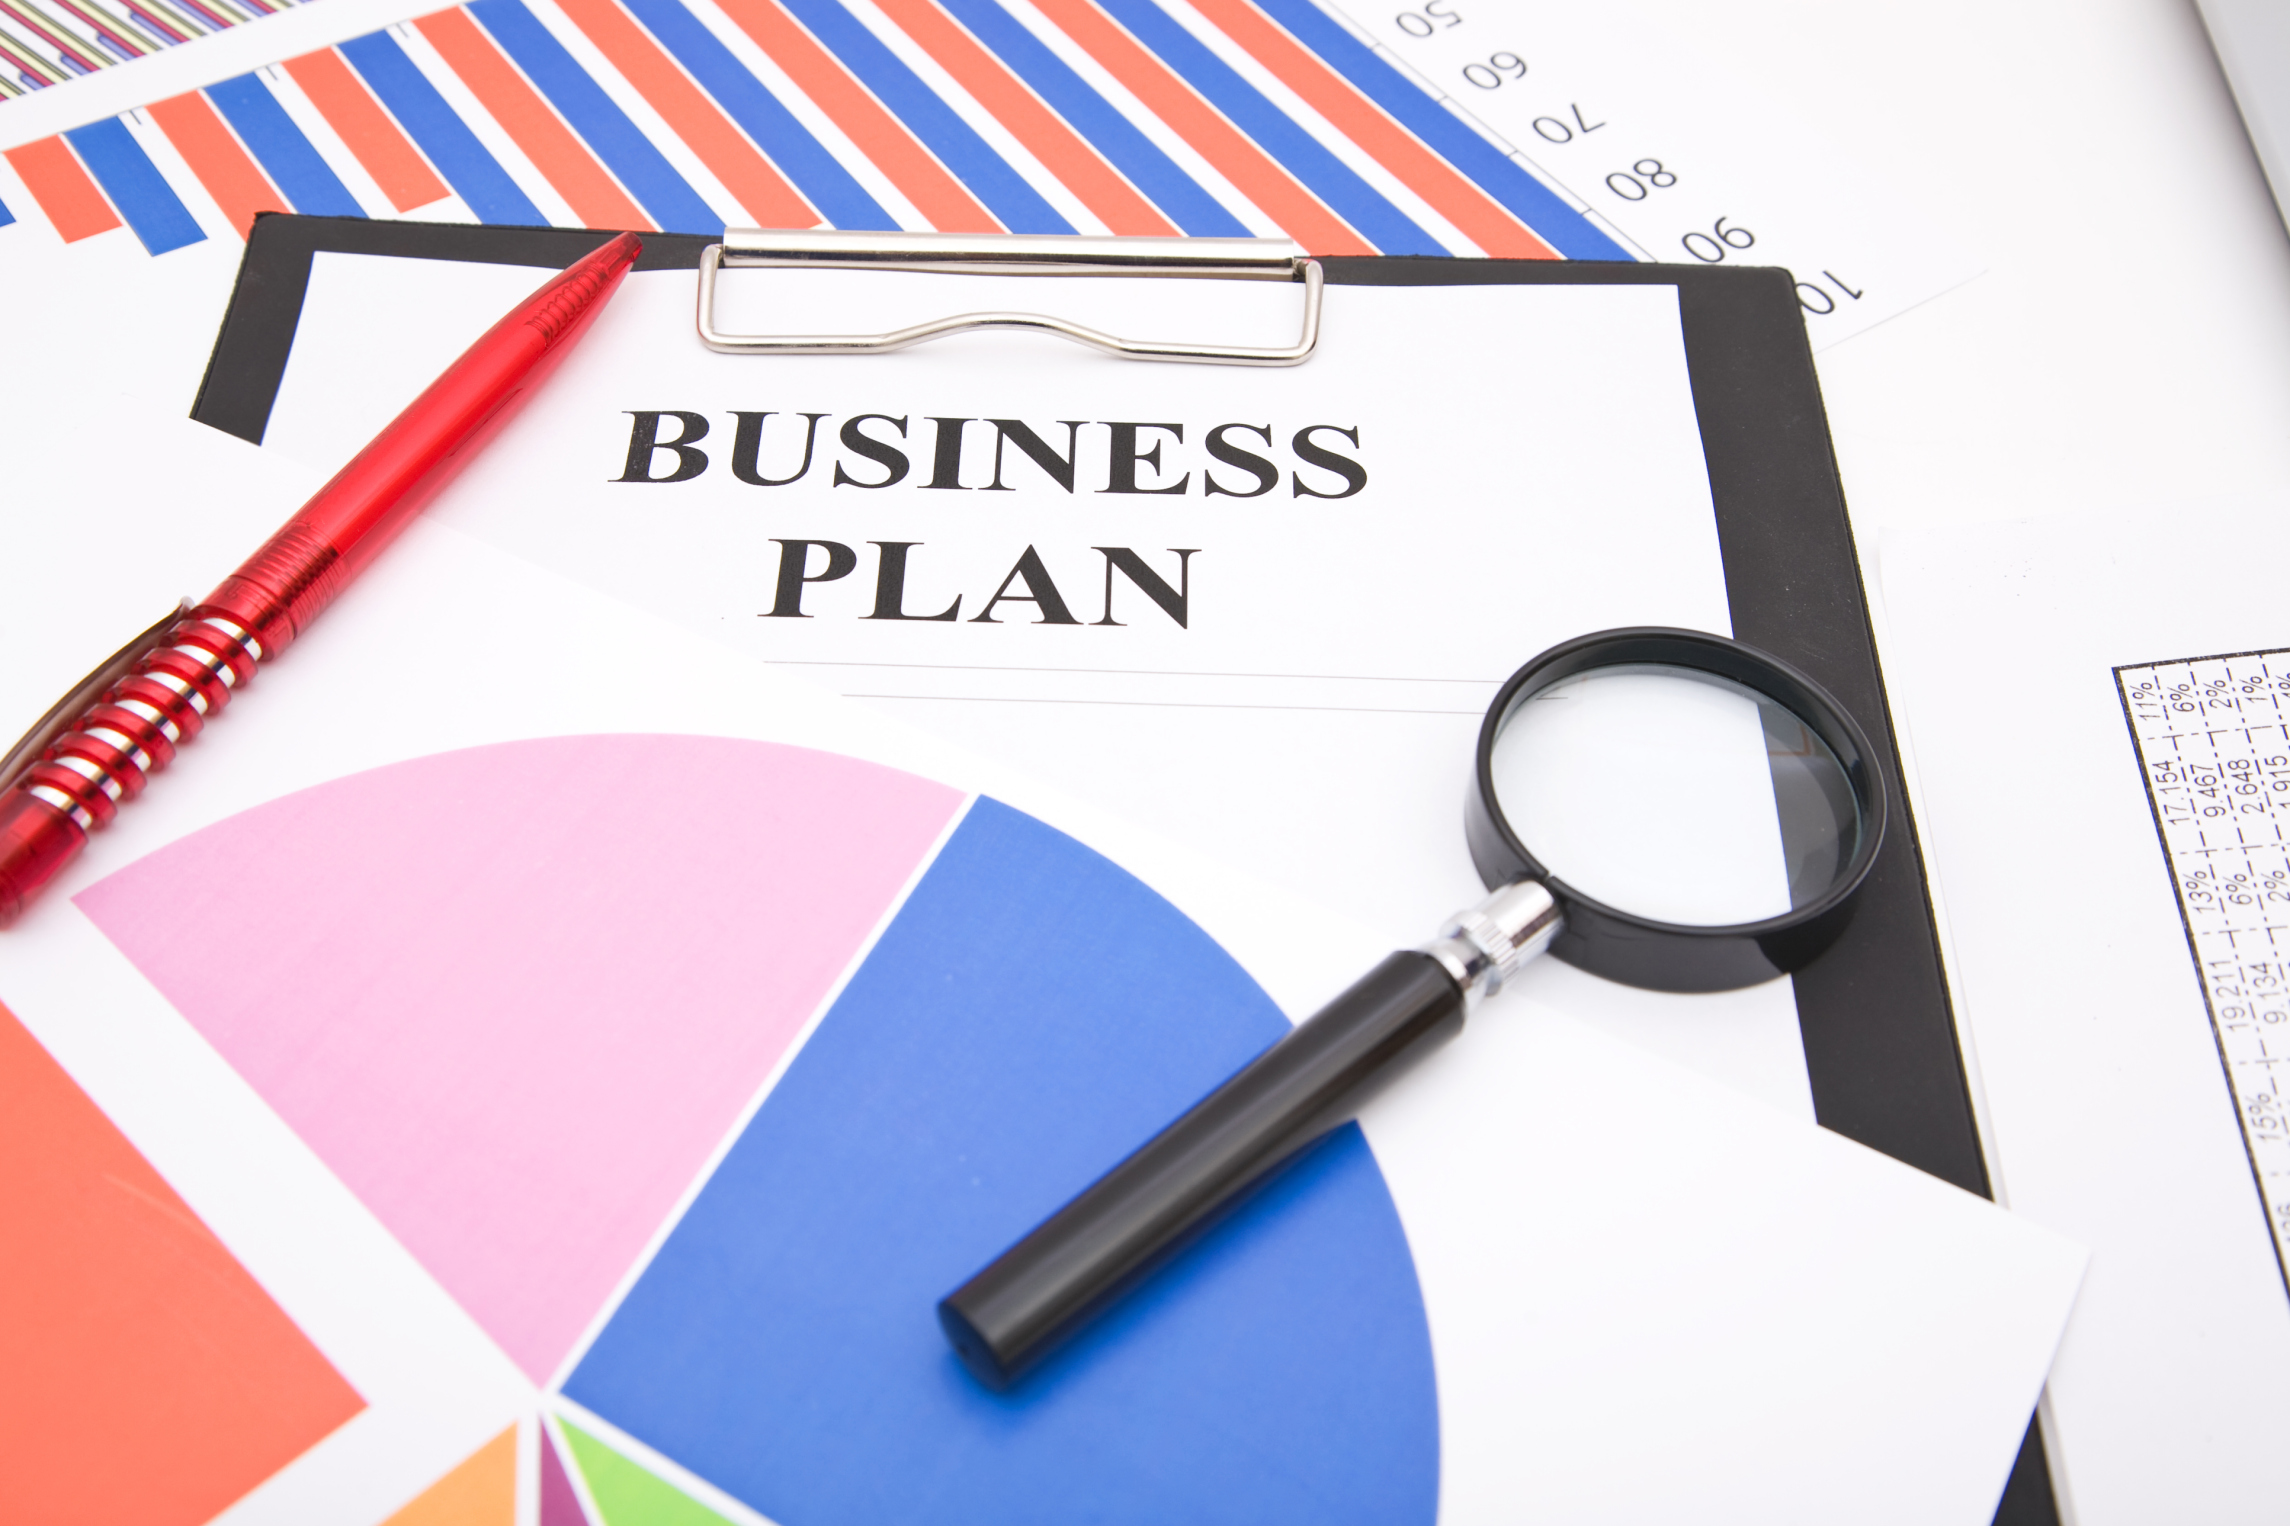 business plan for a made up business essay Writing a business plan start-up briefing england reviewed 01/10/11 3 markets and competitors 31 focus on the segments of the market you plan to target — for example, local customers or a particular age group.